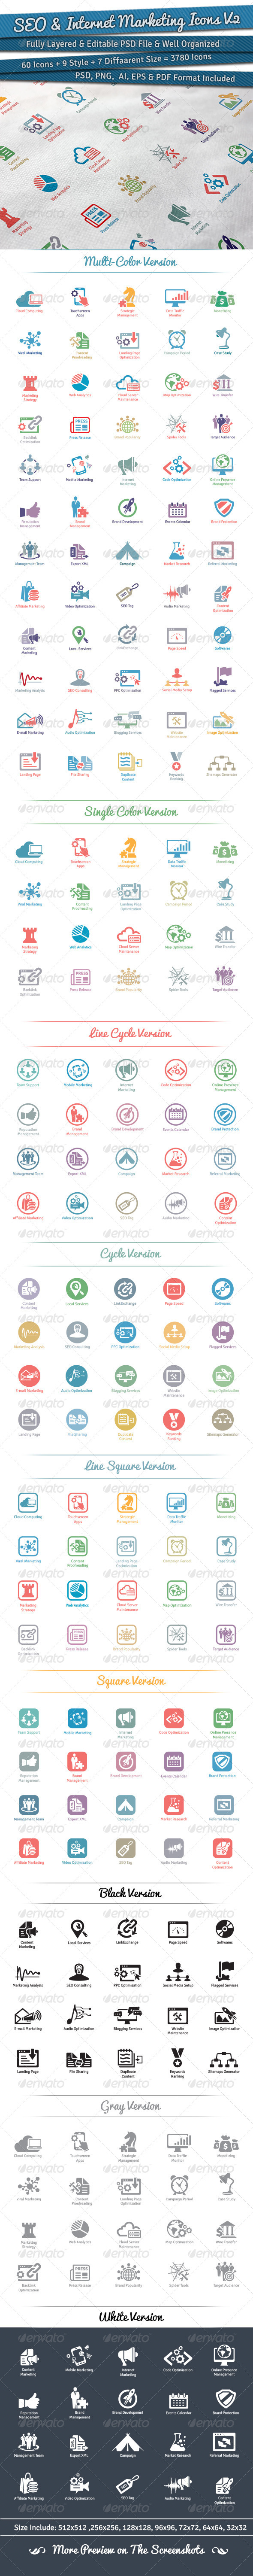 GraphicRiver 60 SEO & Internet Marketing Icons Volume 2 5771814